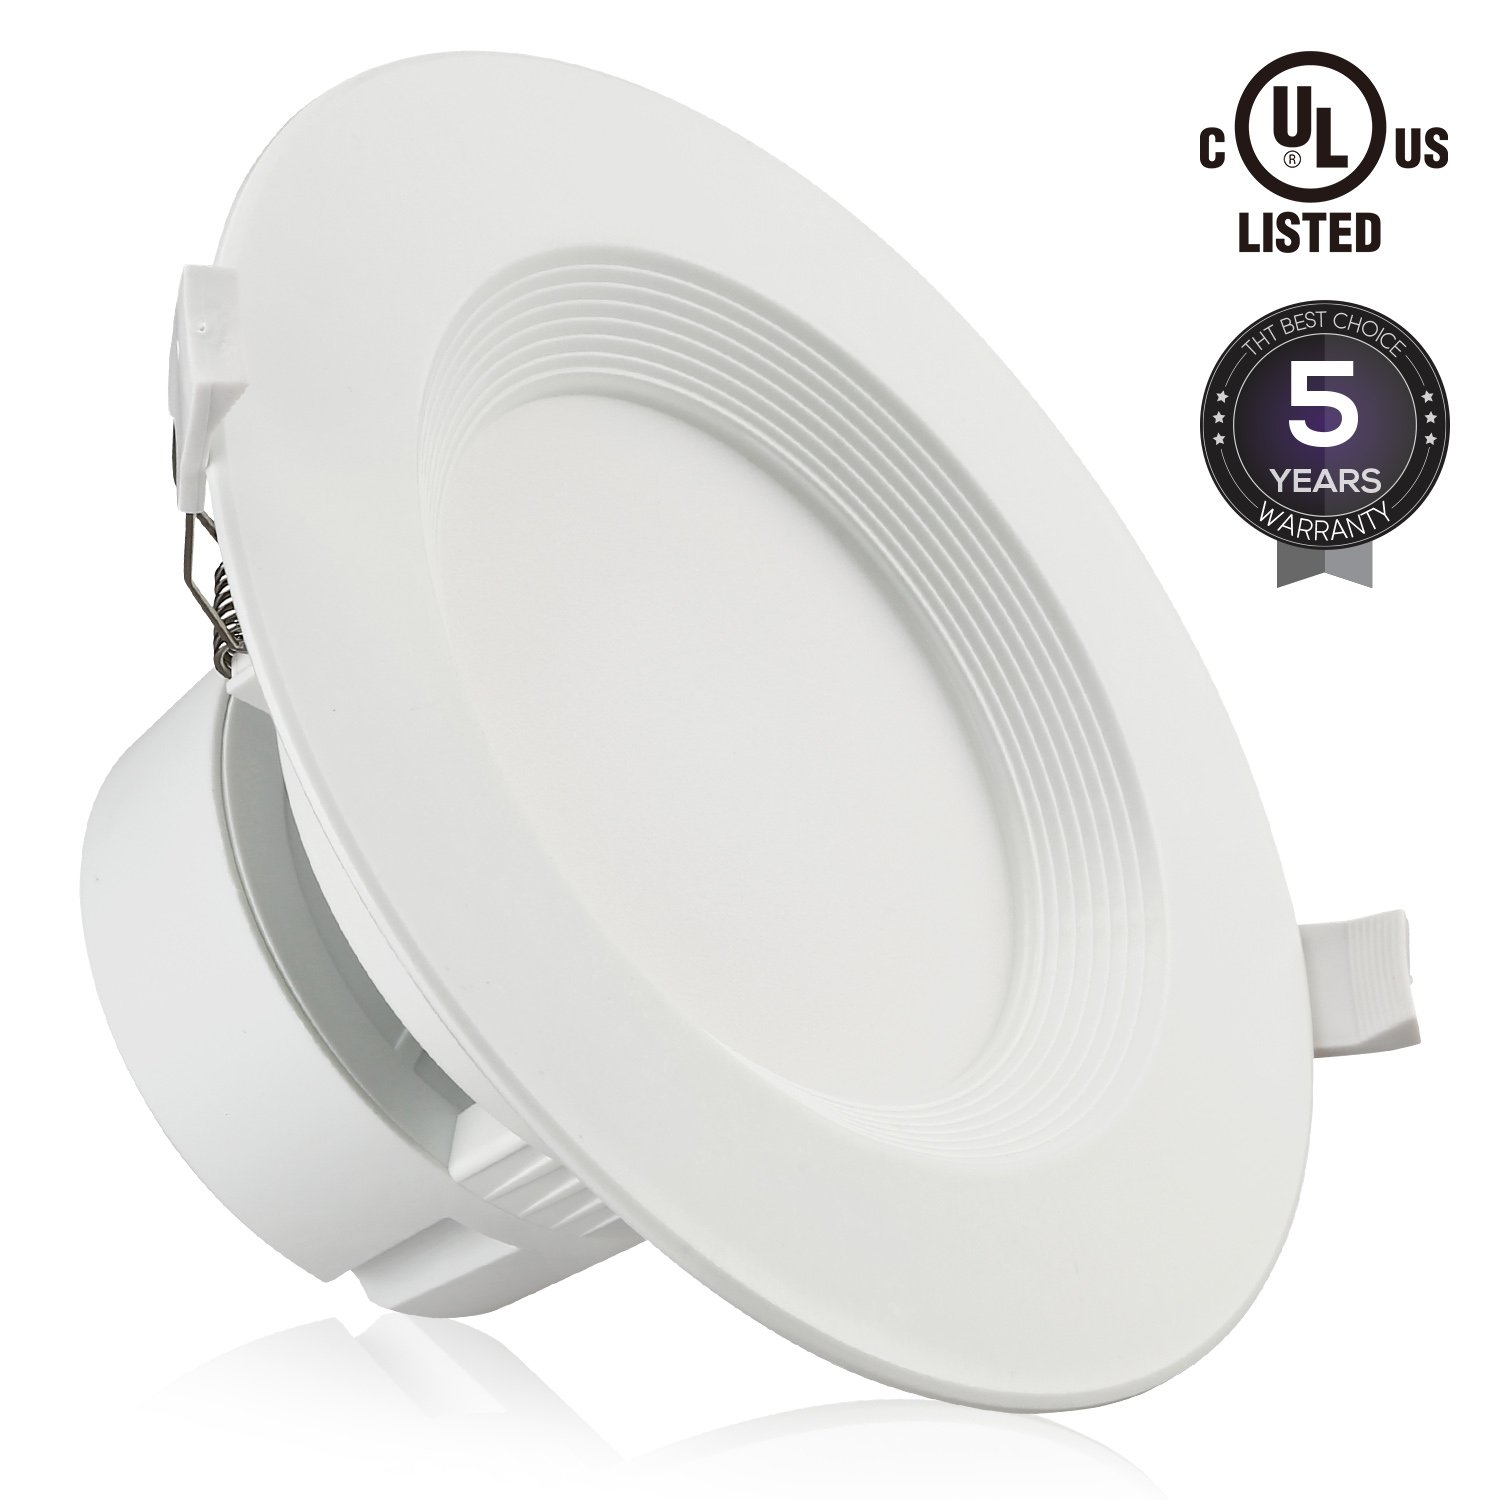 "6"" LED Recessed Downlight with Junction Box, 9W (80W Equivalent) Dimmable LED Ceiling Light Fixture, IC-Rated & Air Tight, Wet Location, 5000K Daylight, UL-listed, 5 Years Warranty"